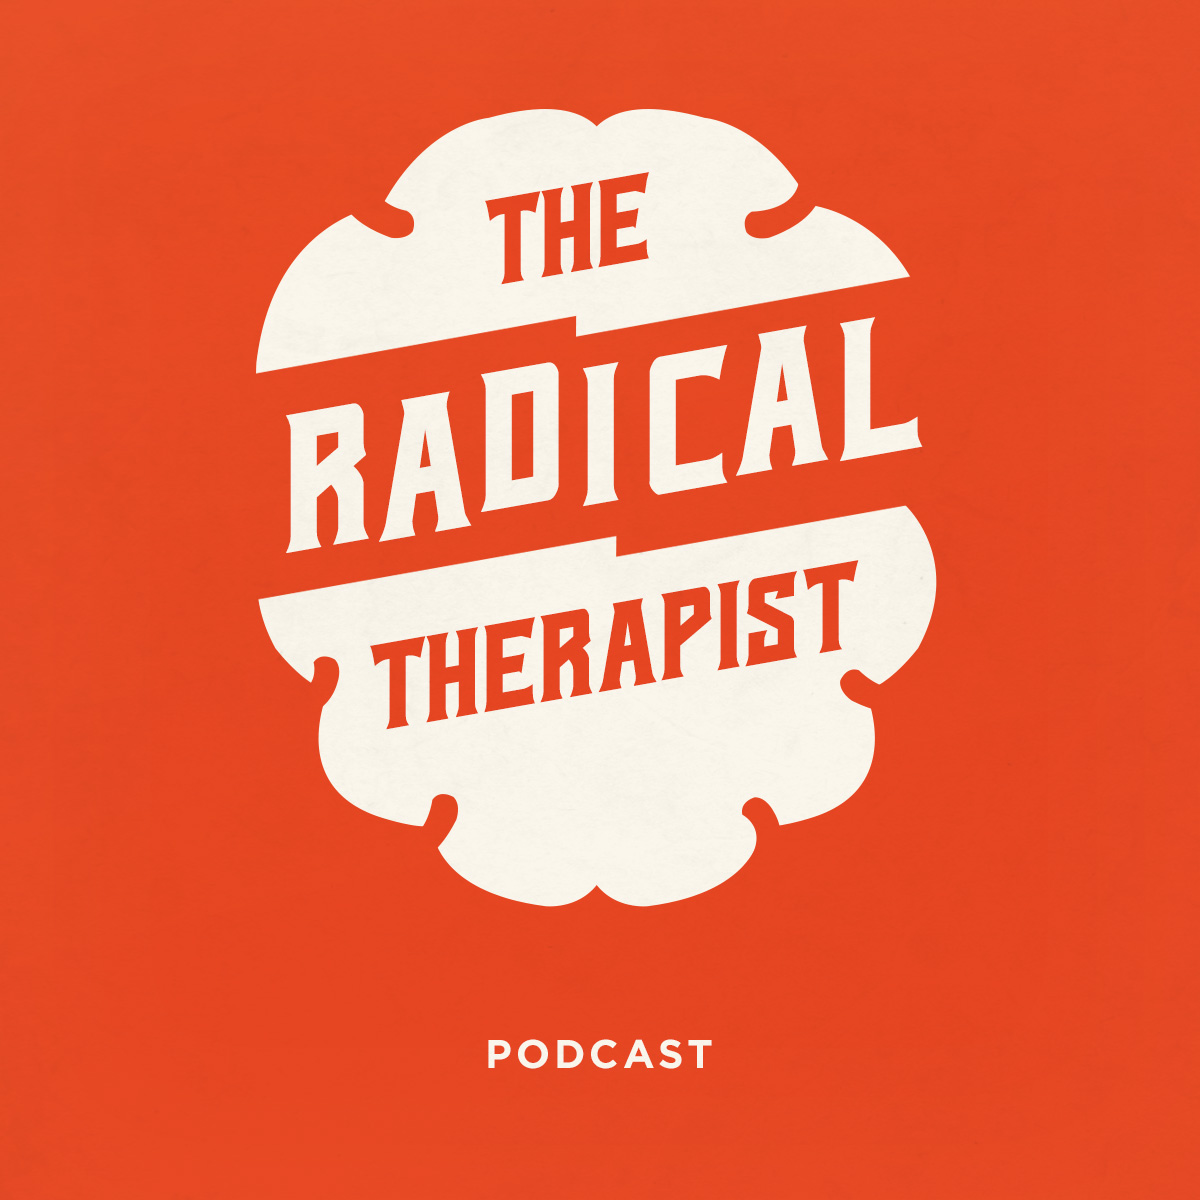 The Radical Therapist #039 – Narrative Supervision as a Social Justice Practice w/ Sarah Kahn, PhD, LMFT